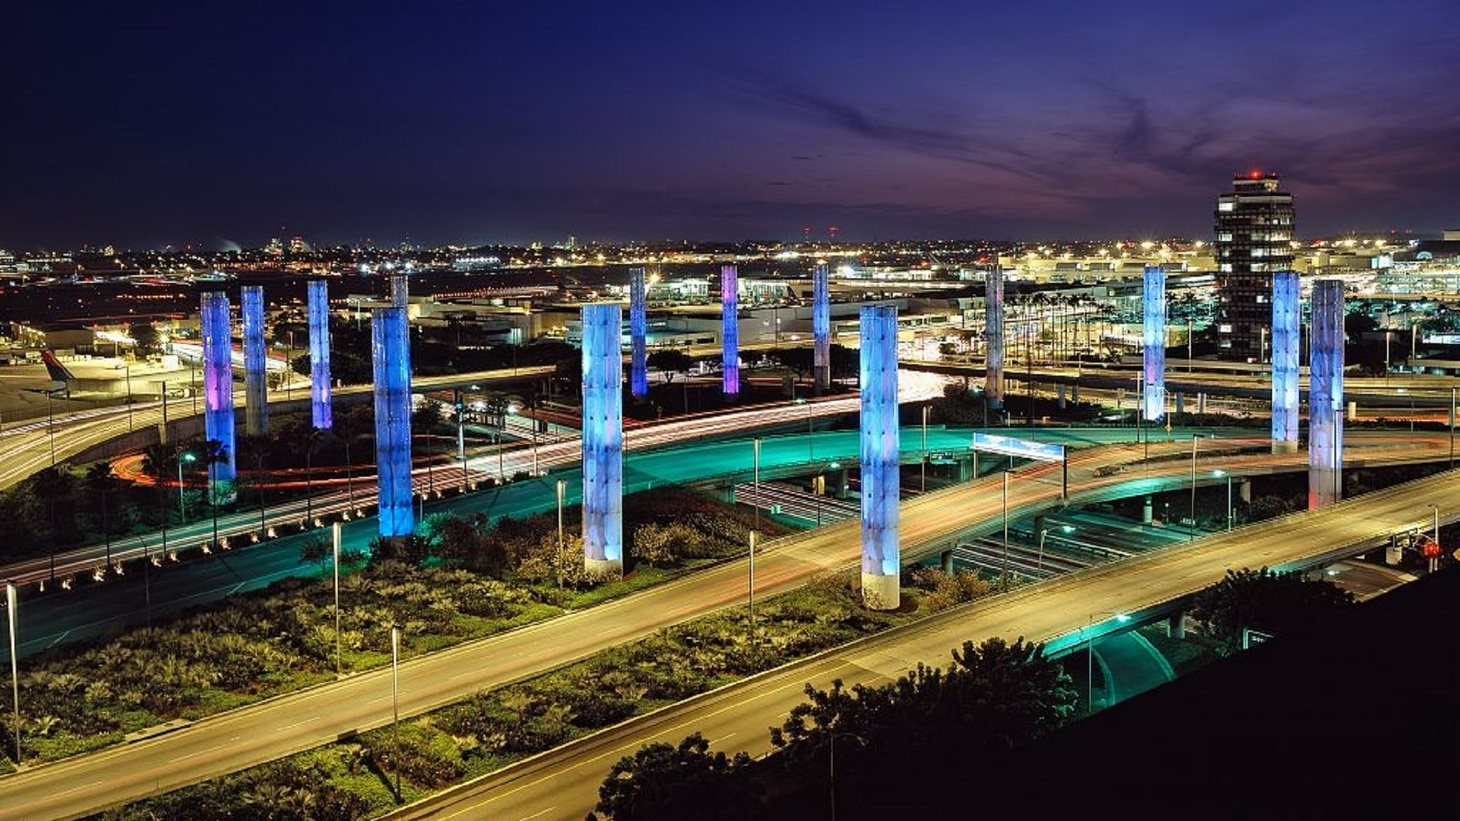 LAX airport at night.